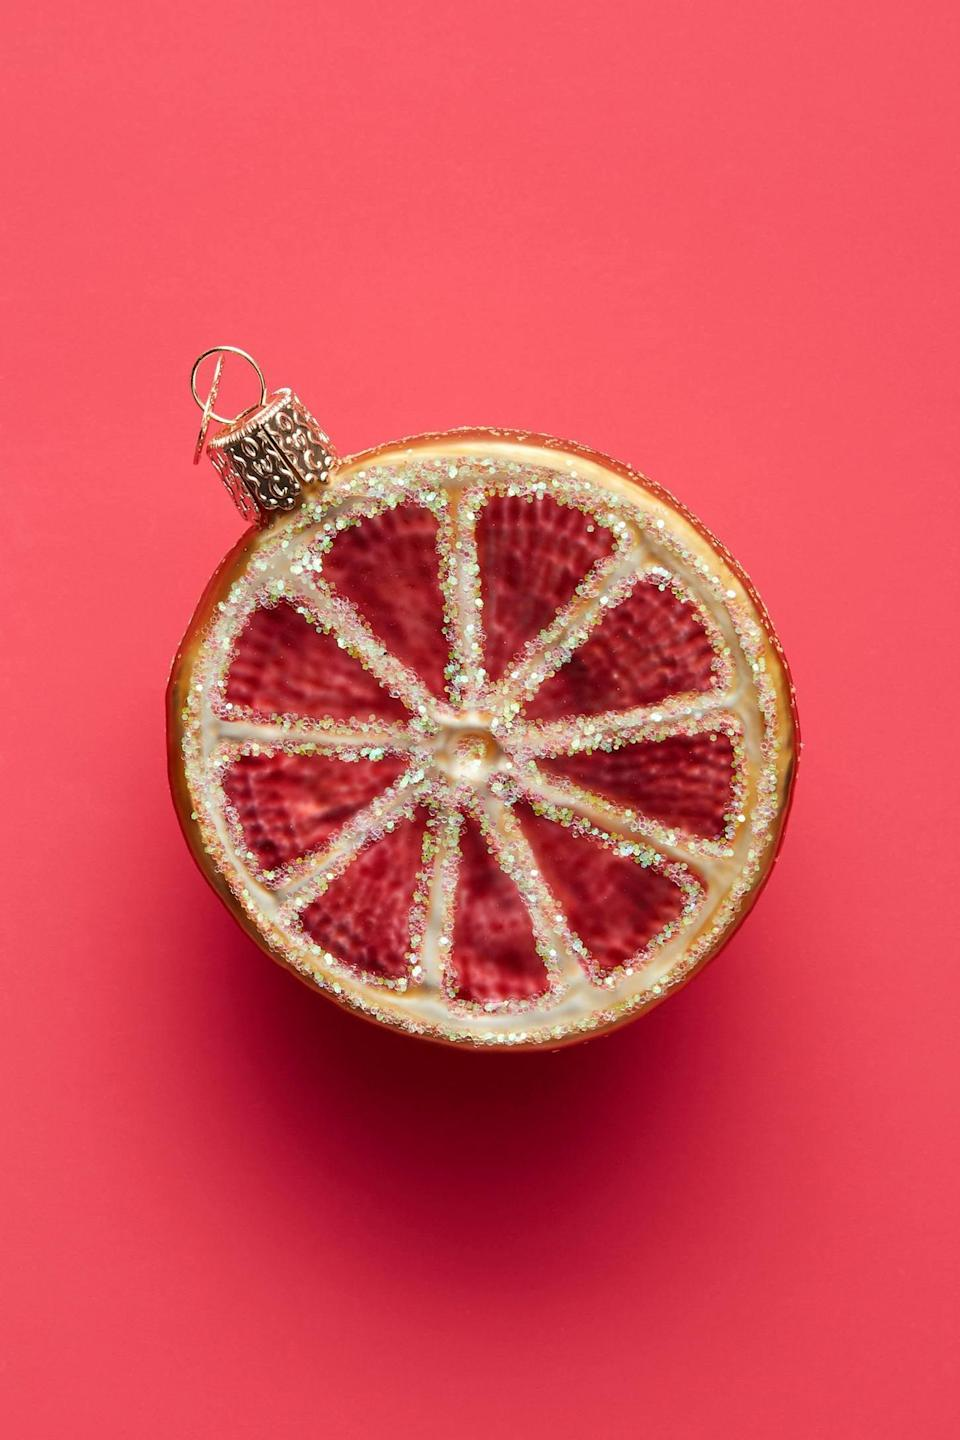 """<p>The <a href=""""https://www.popsugar.com/buy/Sliced-Grapefruit-Ornament-490503?p_name=Sliced%20Grapefruit%20Ornament&retailer=anthropologie.com&pid=490503&price=16&evar1=casa%3Aus&evar9=46615300&evar98=https%3A%2F%2Fwww.popsugar.com%2Fhome%2Fphoto-gallery%2F46615300%2Fimage%2F46615373%2FSliced-Grapefruit-Ornament&list1=shopping%2Canthropologie%2Choliday%2Cchristmas%2Cchristmas%20decorations%2Choliday%20decor%2Chome%20shopping&prop13=mobile&pdata=1"""" rel=""""nofollow noopener"""" class=""""link rapid-noclick-resp"""" target=""""_blank"""" data-ylk=""""slk:Sliced Grapefruit Ornament"""">Sliced Grapefruit Ornament</a> ($16) looks so fresh, you'll want to eat it for breakfast.</p>"""